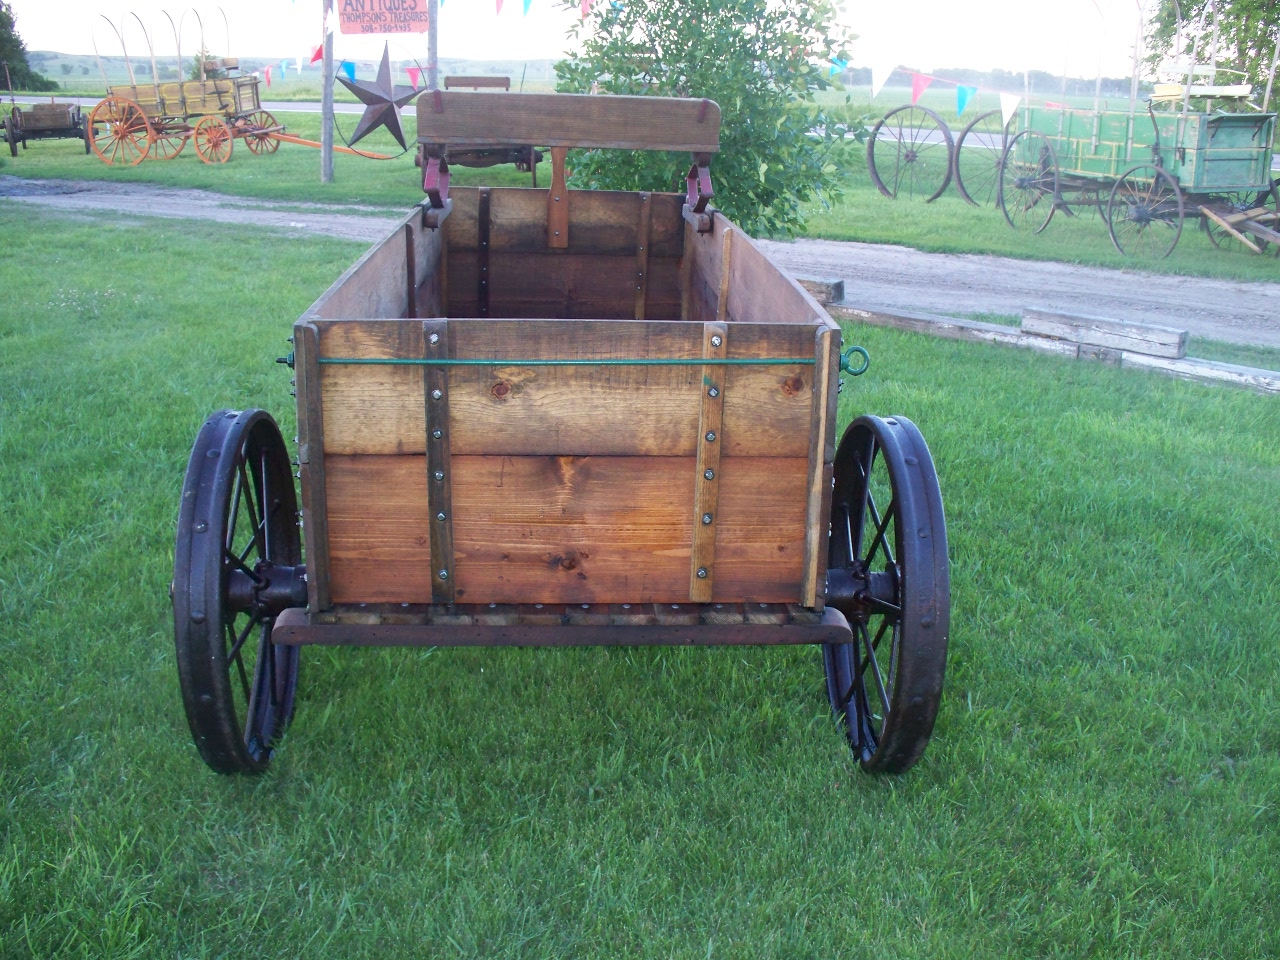 Tractor Pulled Wagon : Tamit vintage john deere horse drawn wagon